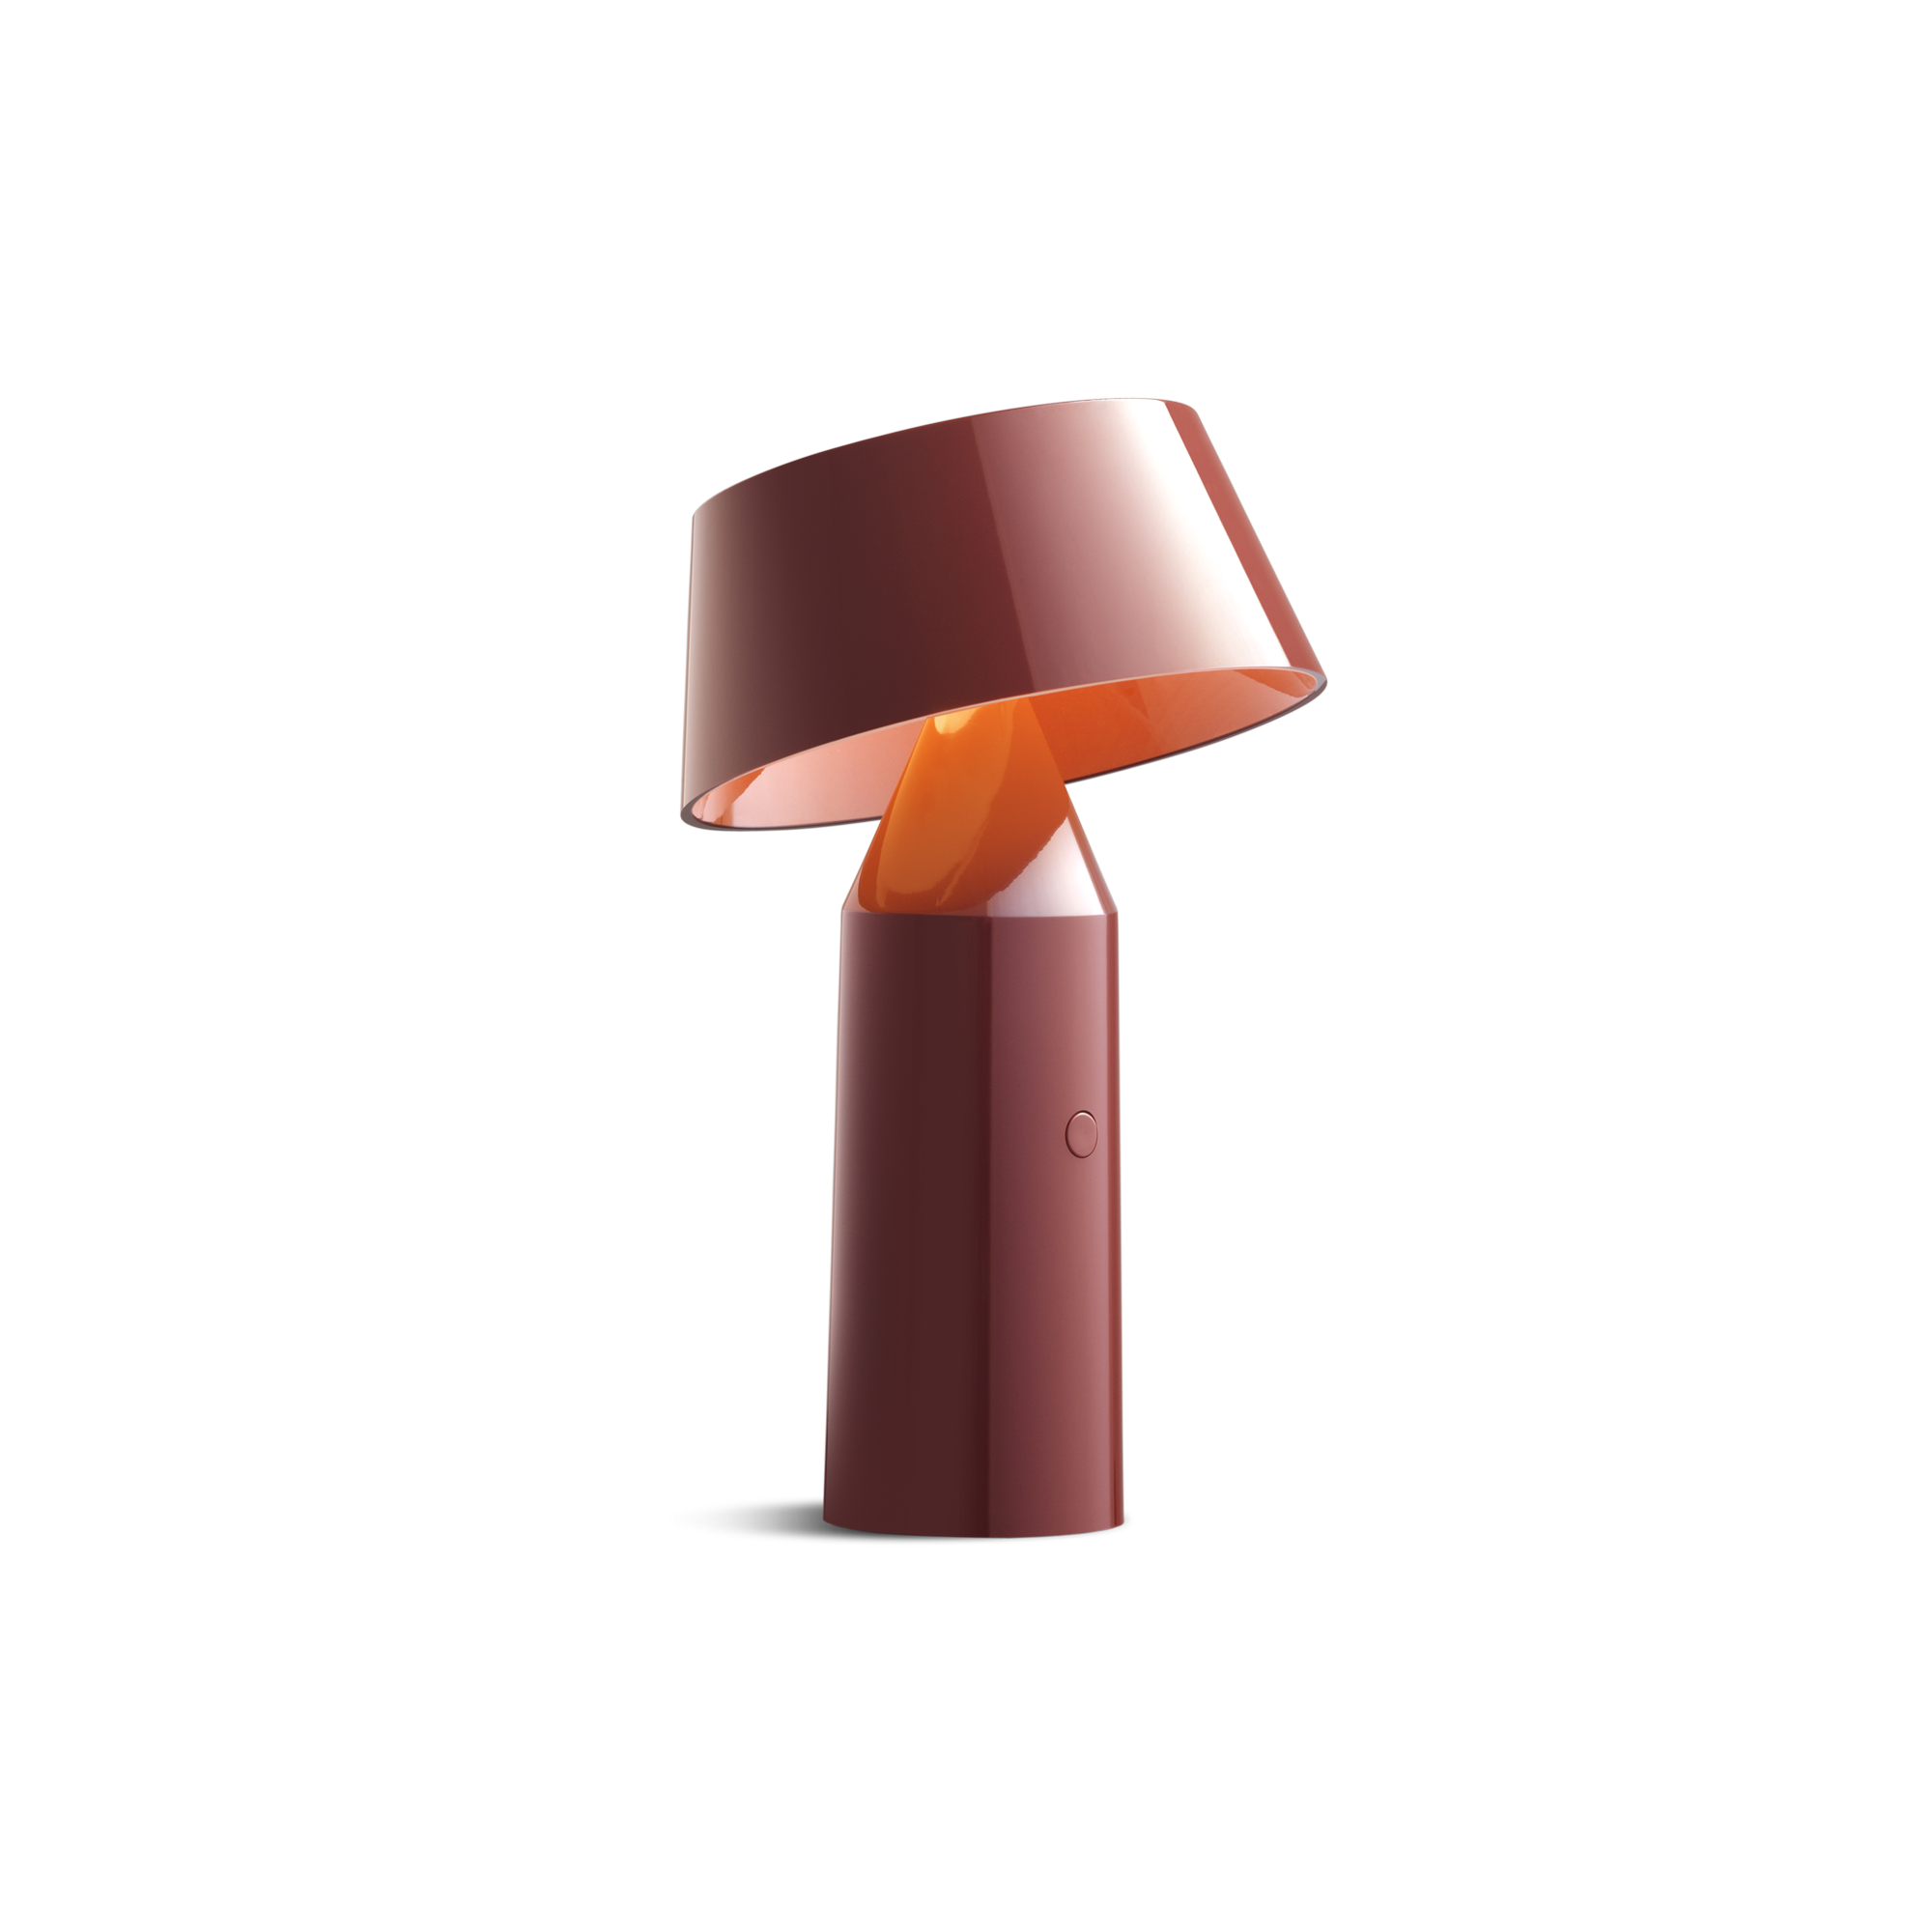 Small red cordless lamp with cylindrical base and tilted shade